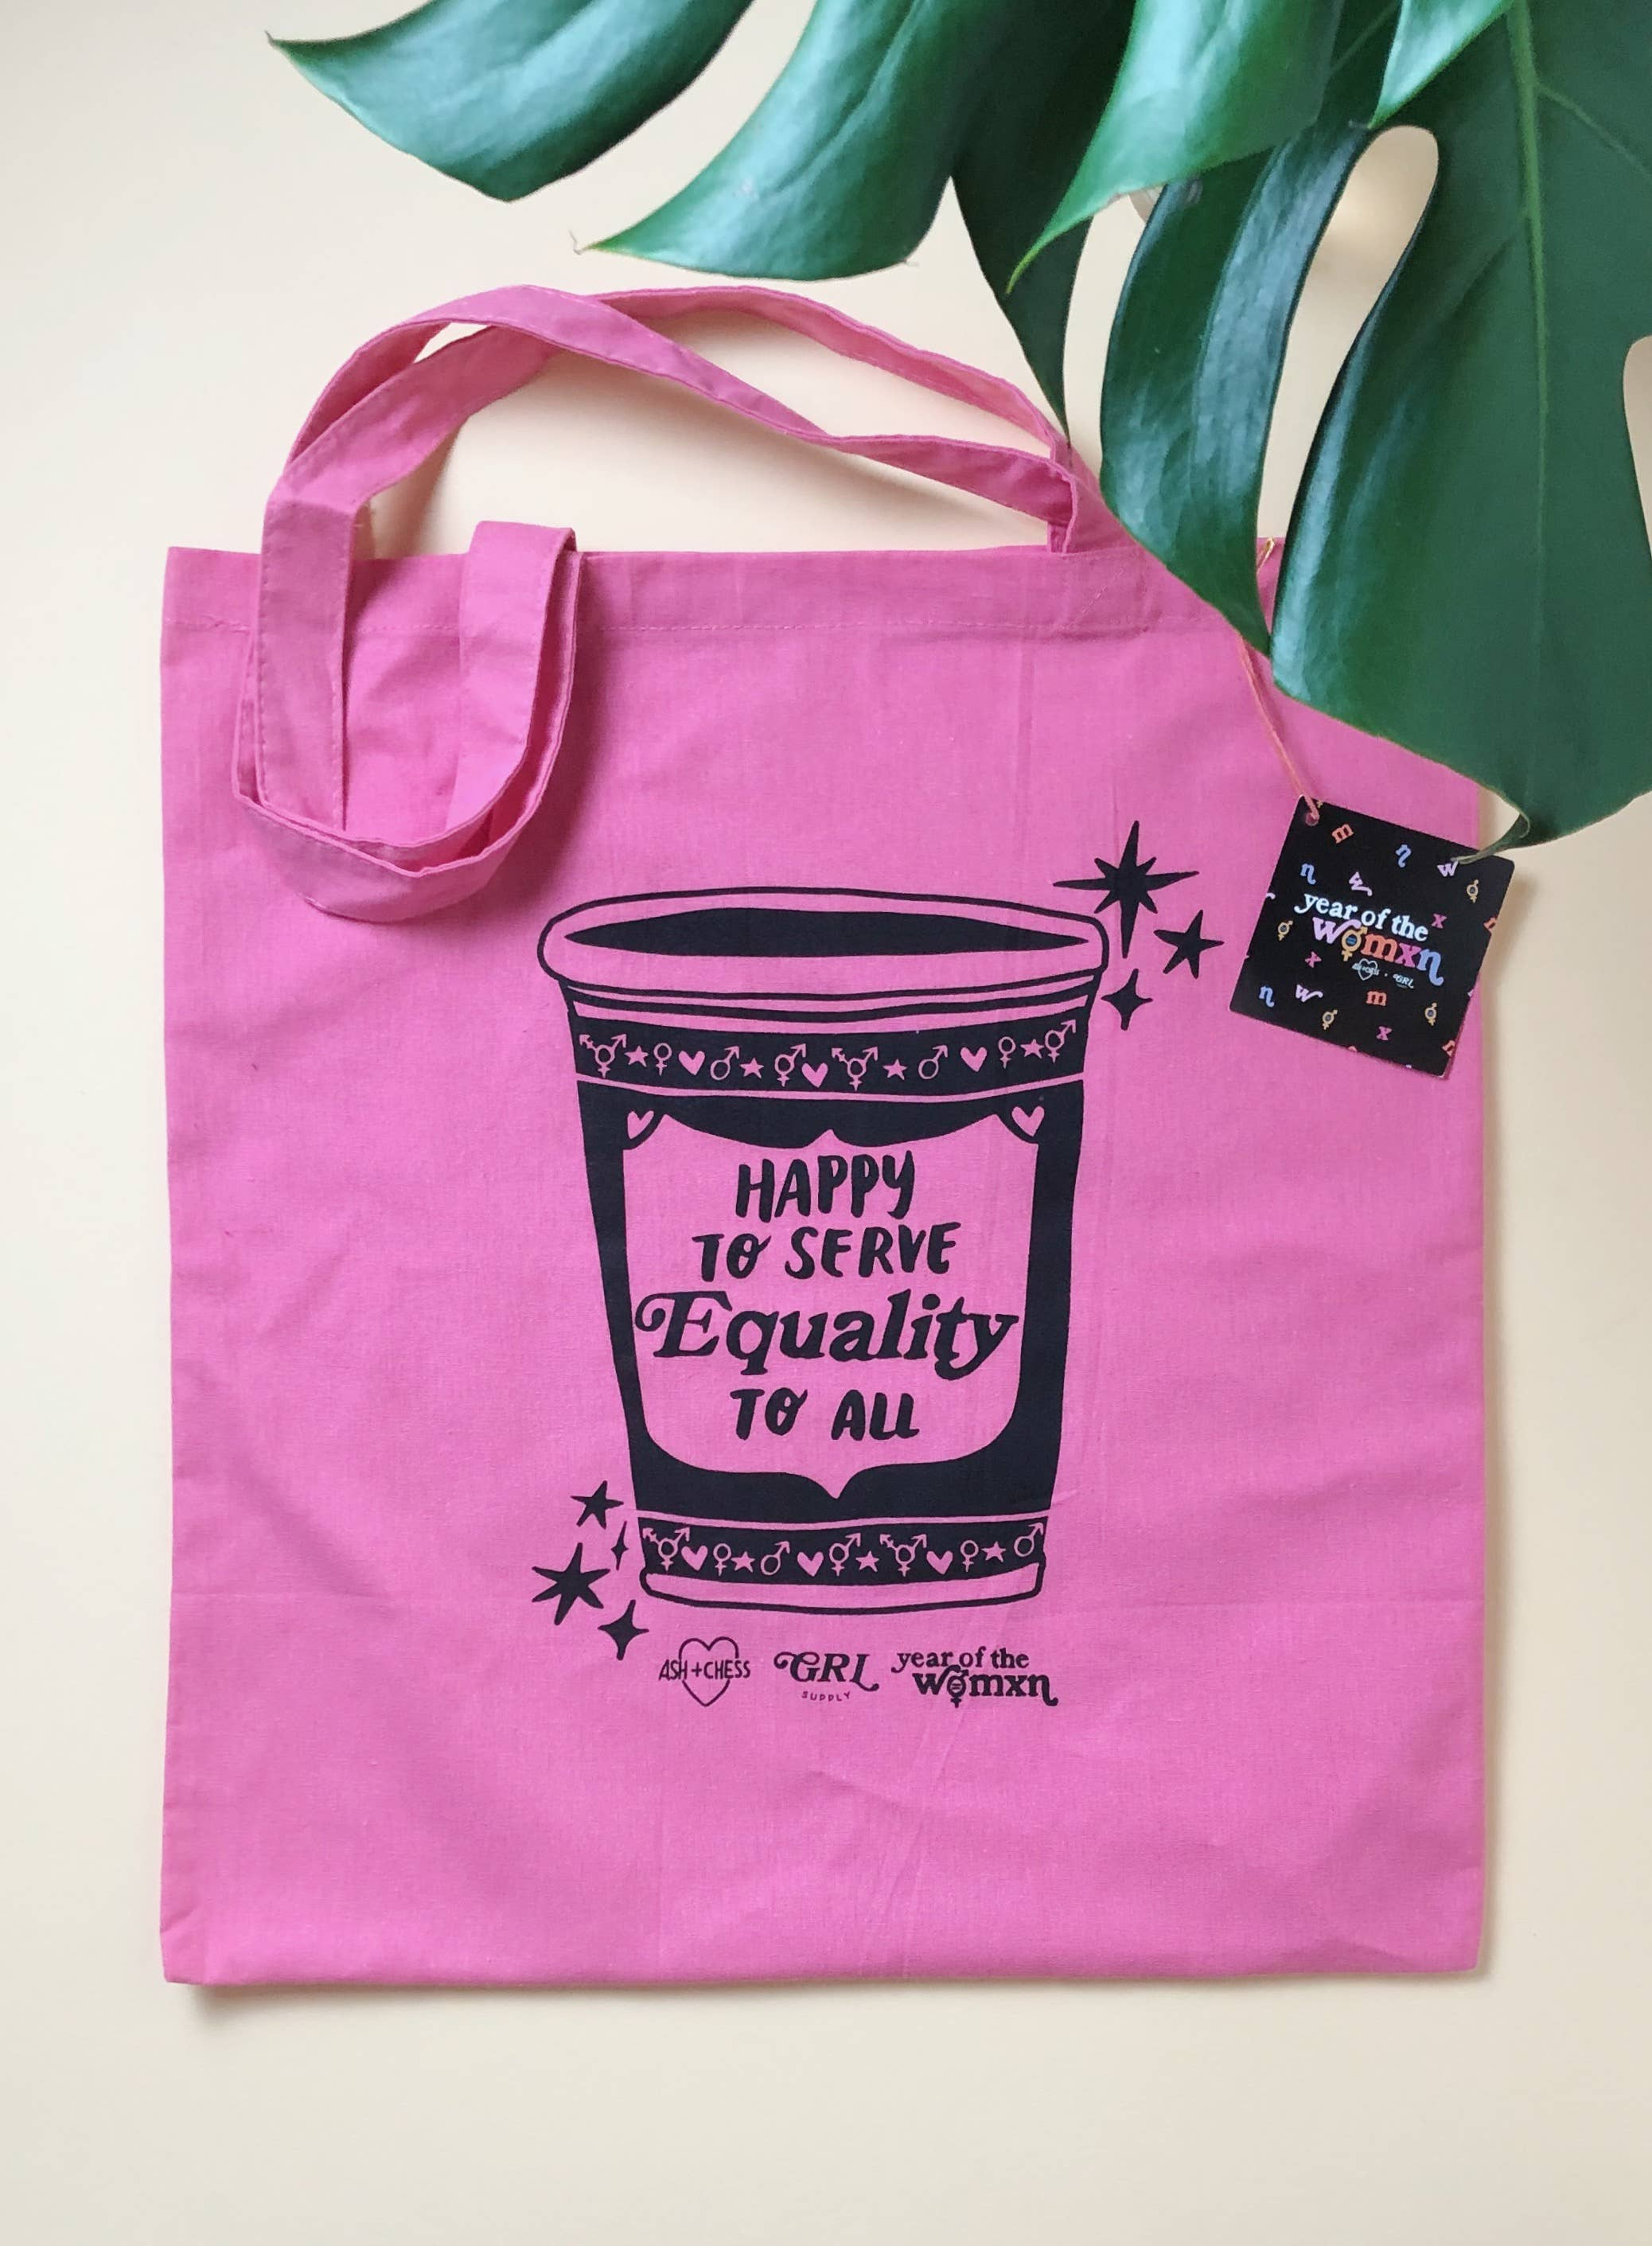 Equality Coffee tote bag